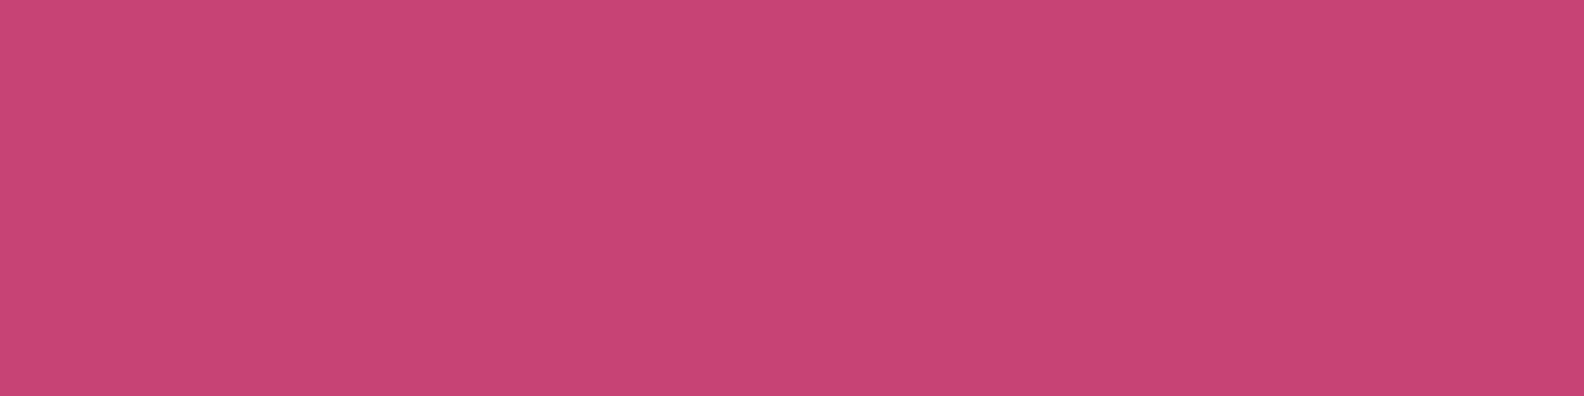 1584x396 Fuchsia Rose Solid Color Background